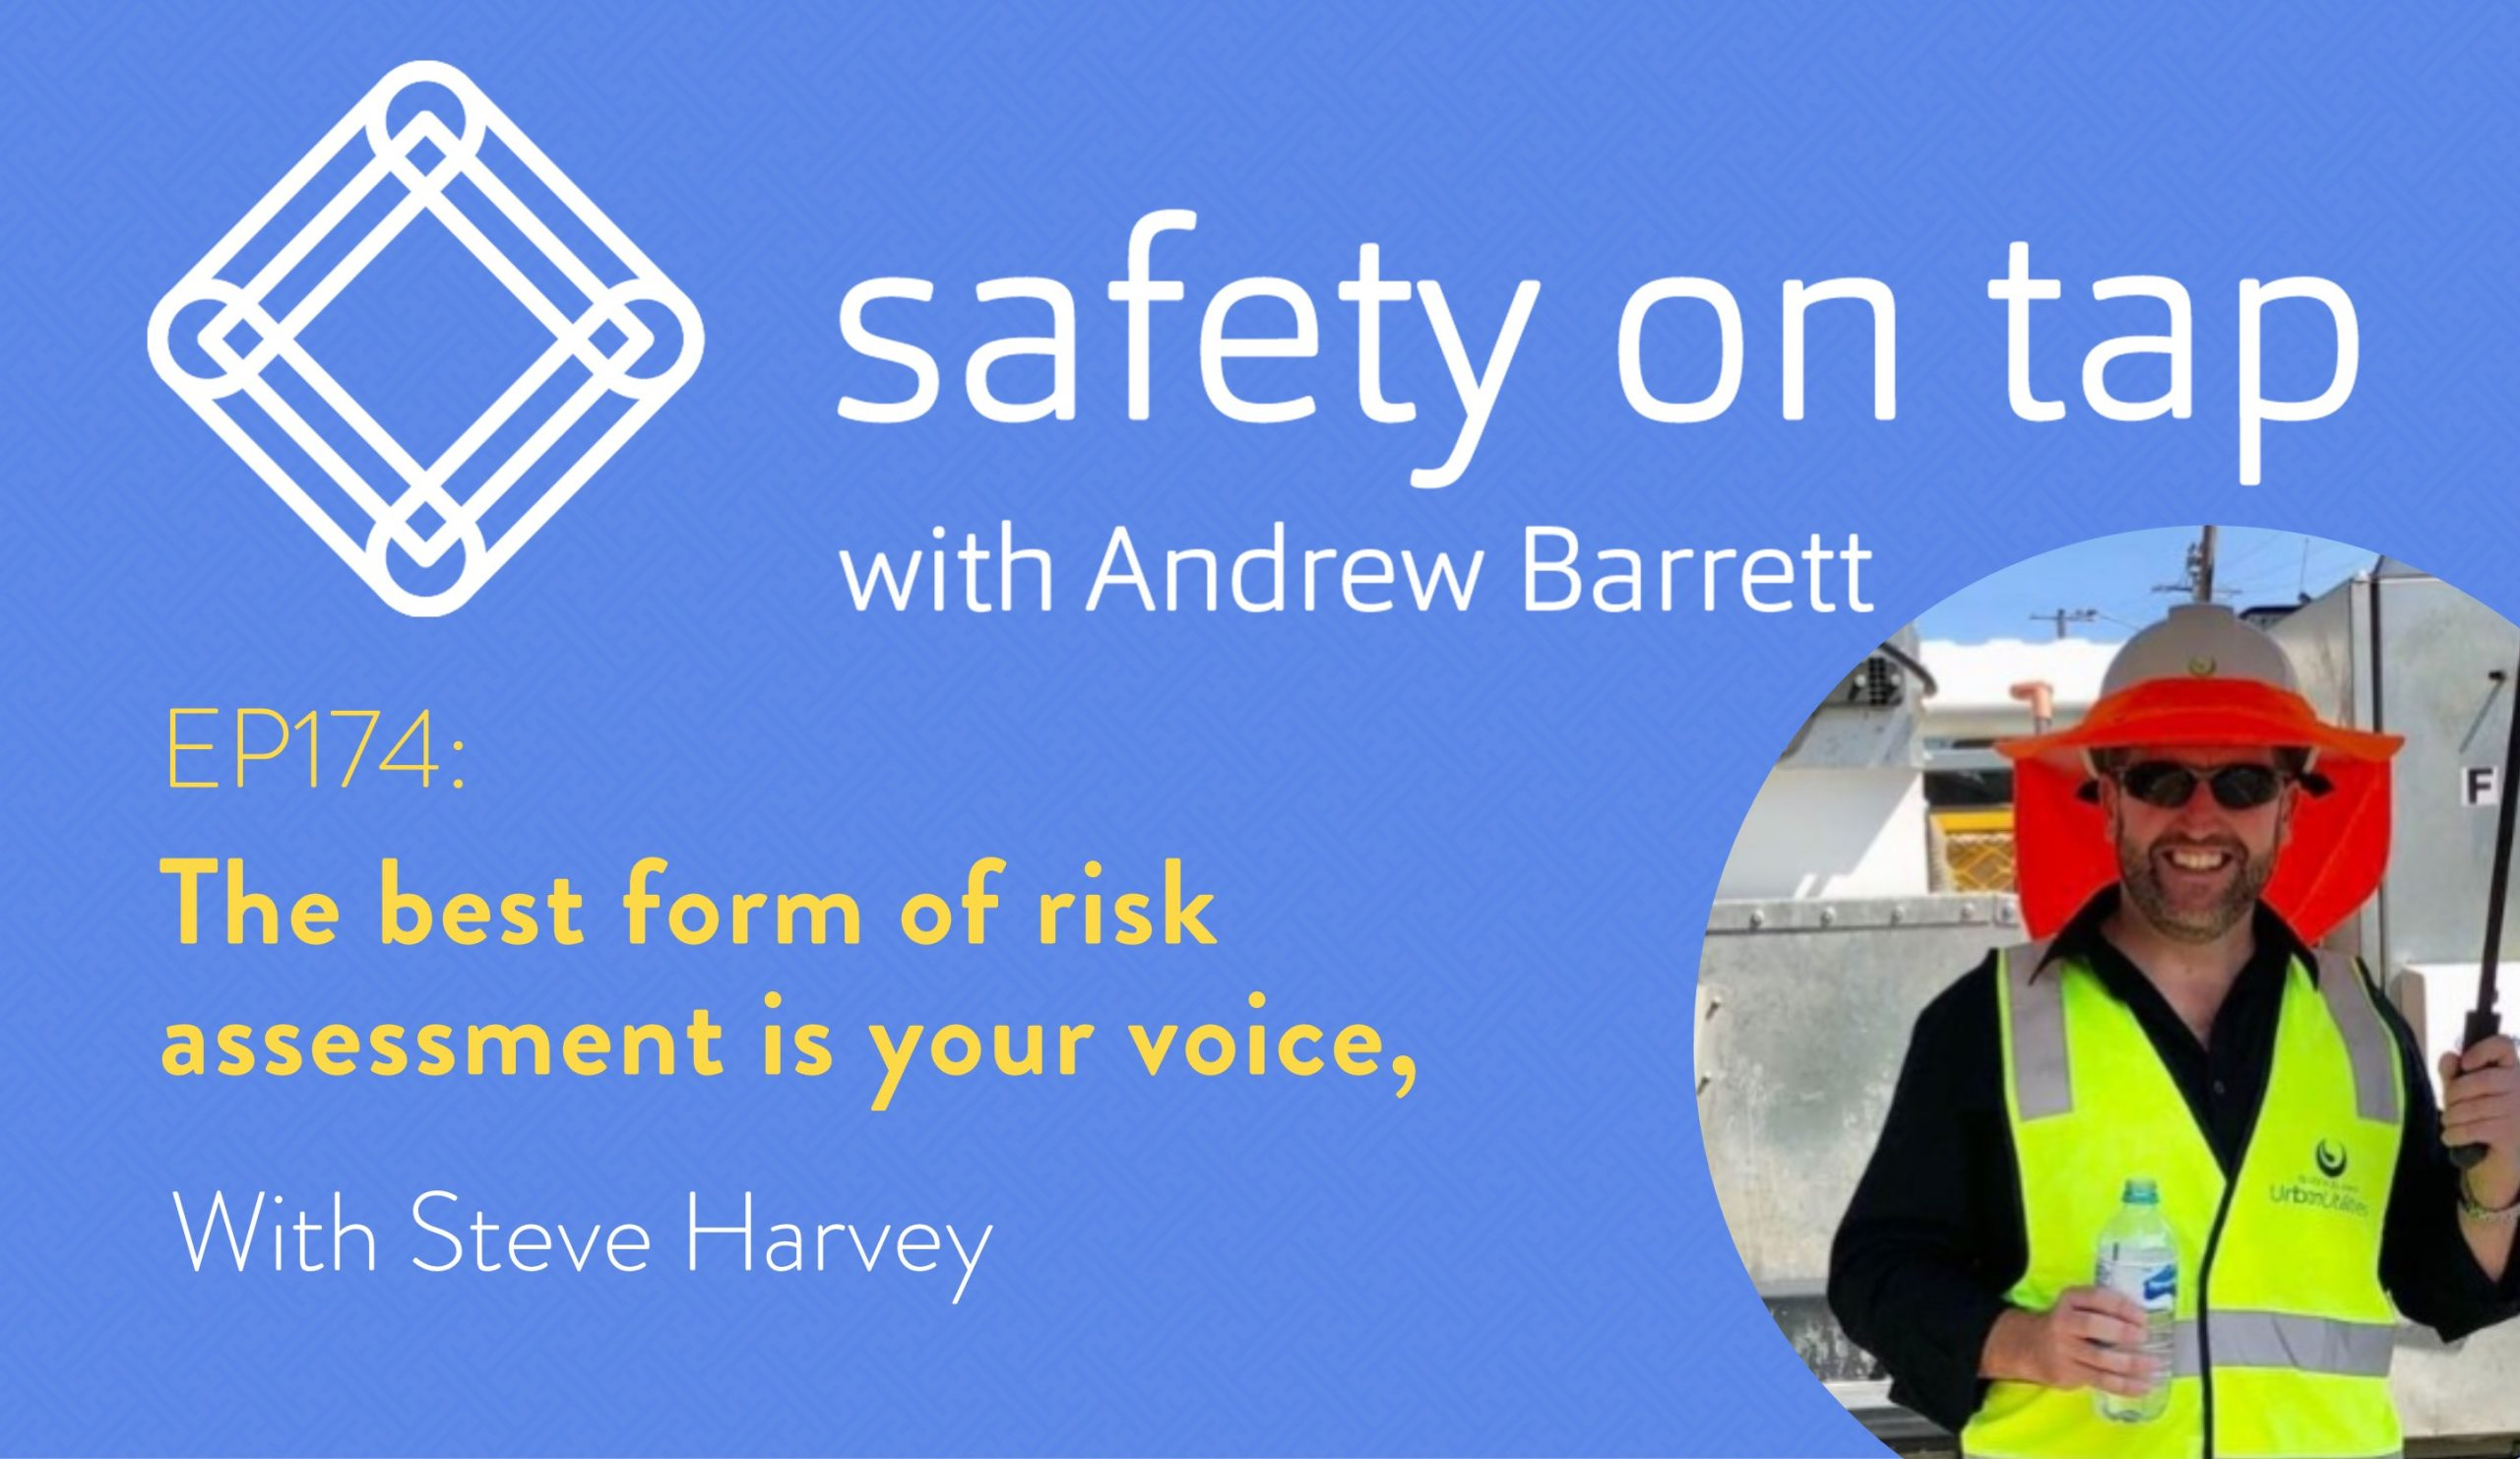 Ep174: The best form of risk assessment is your voice, with Steve Harvey